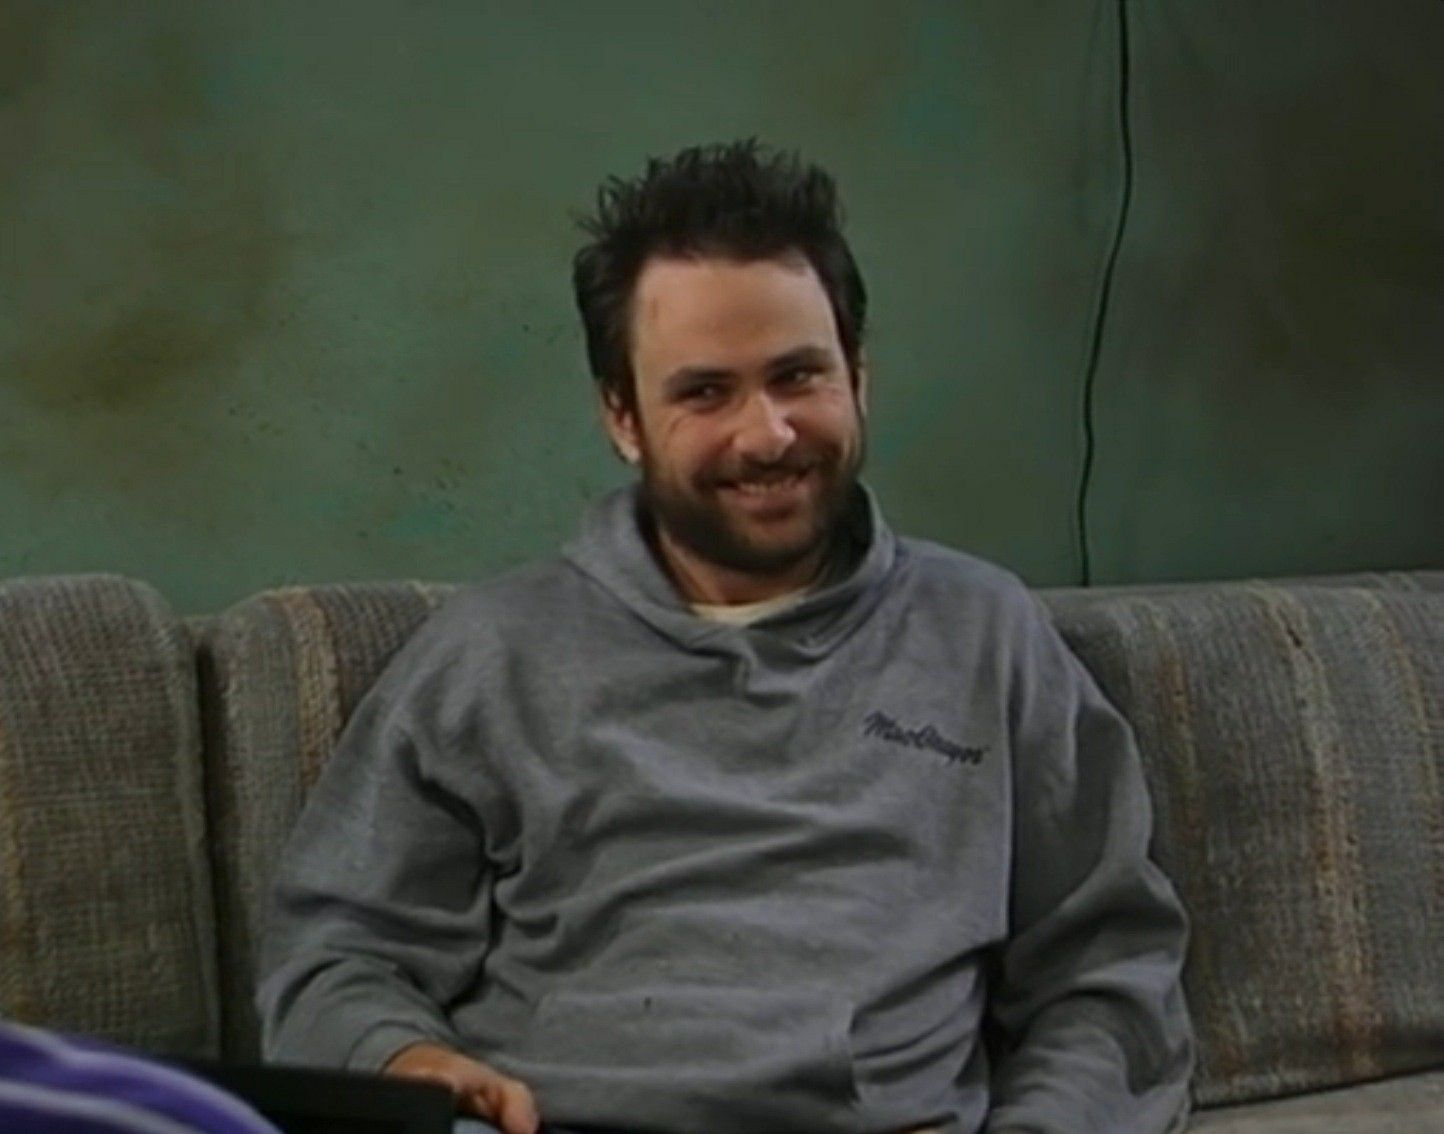 iasip-charlie-dating-profile-hollywood